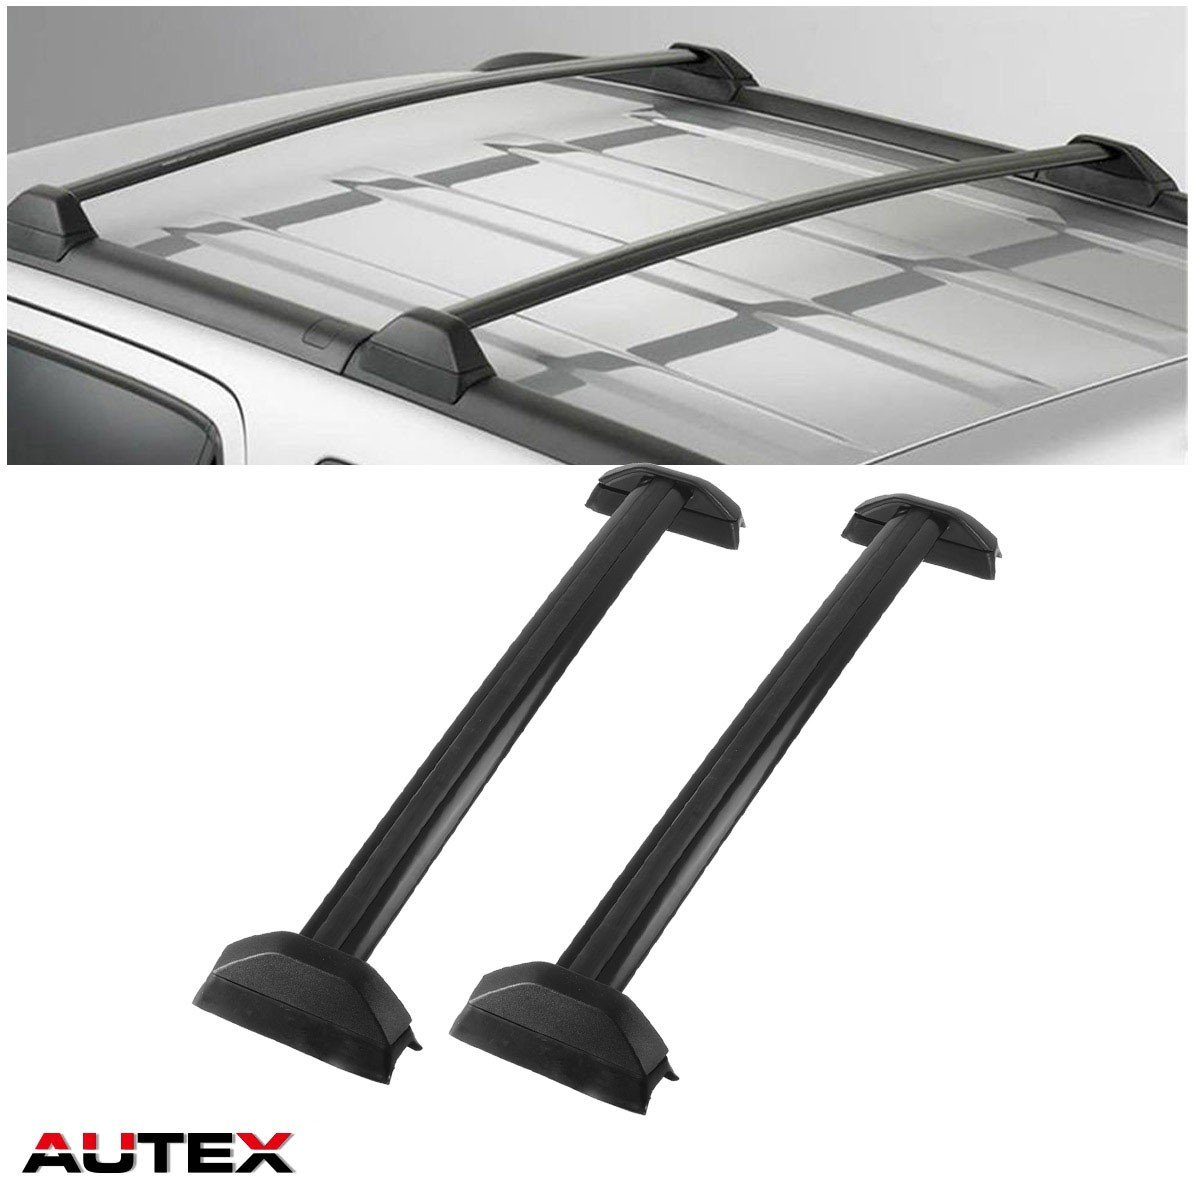 AUTEX 2Pcs Aluminum Cross Bar Roof Rack Compatible with 2002 2003 2004 2005 2006 Honda CRV Roof Top Rail Rack Crossbar Luggage Cargo Carrier Rack